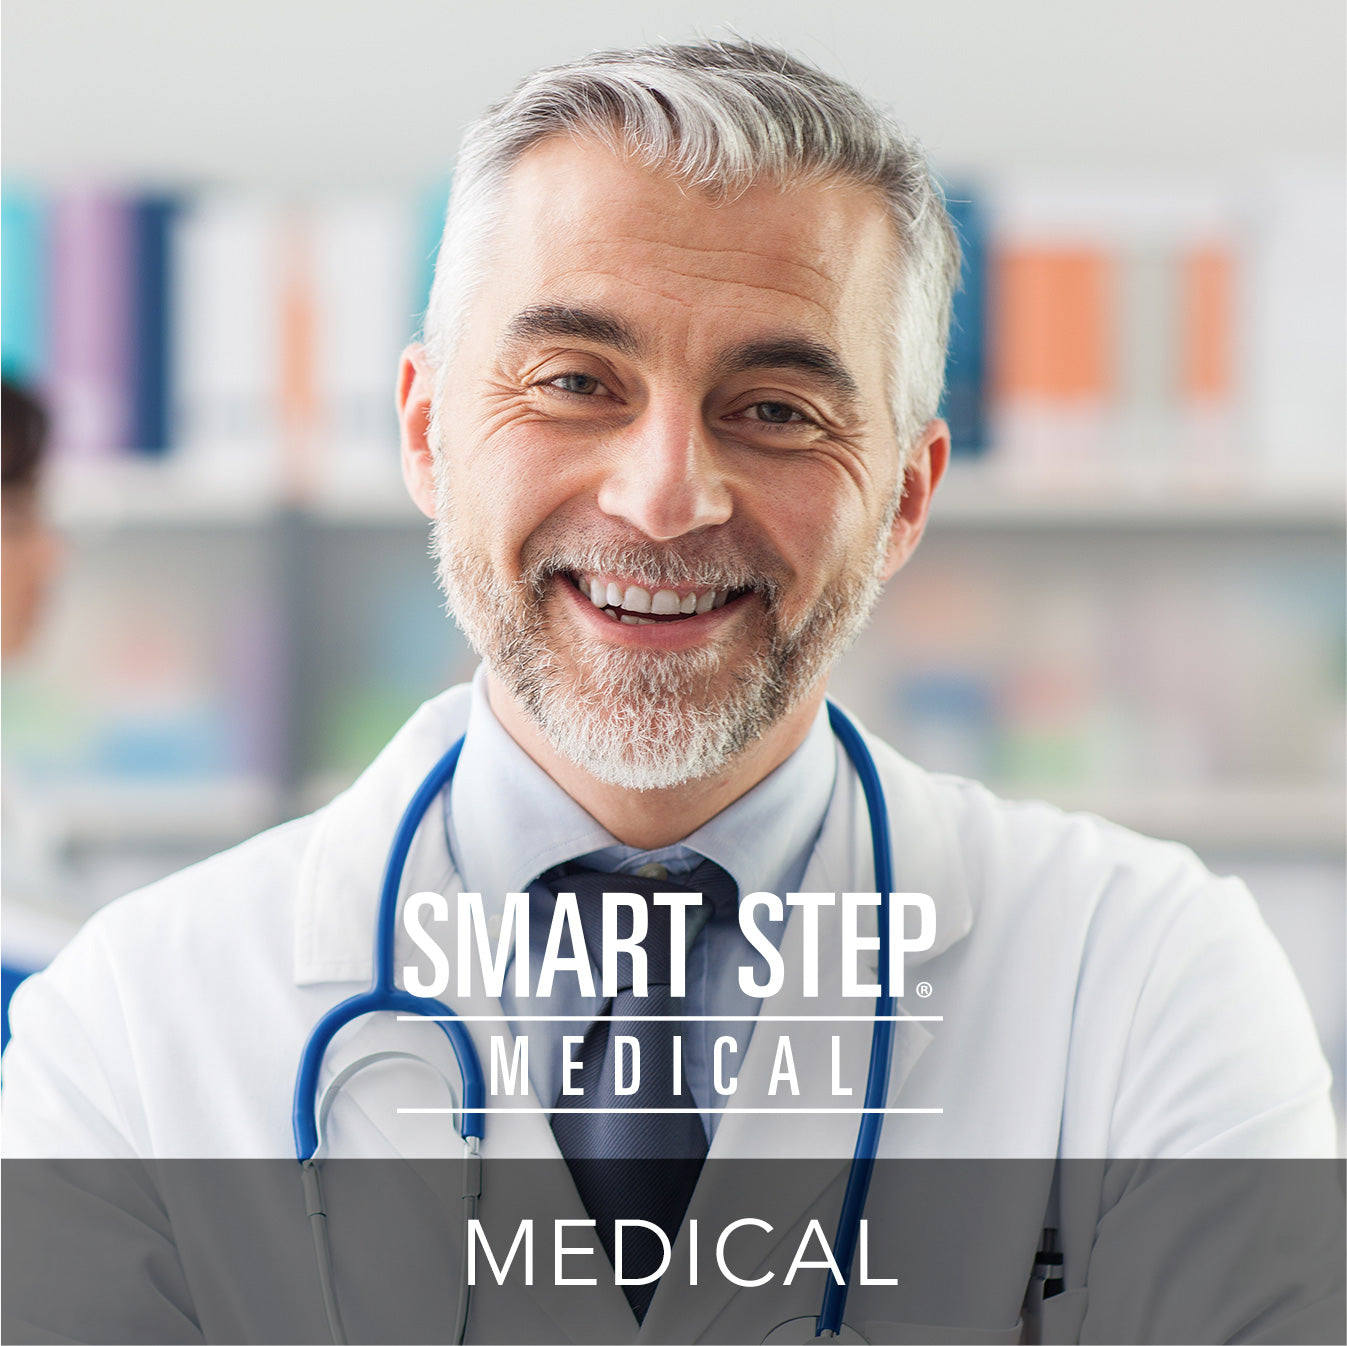 Smart Step Premium Performance Mats – Anti-Fatigue Mats for Healthcare and Wellness